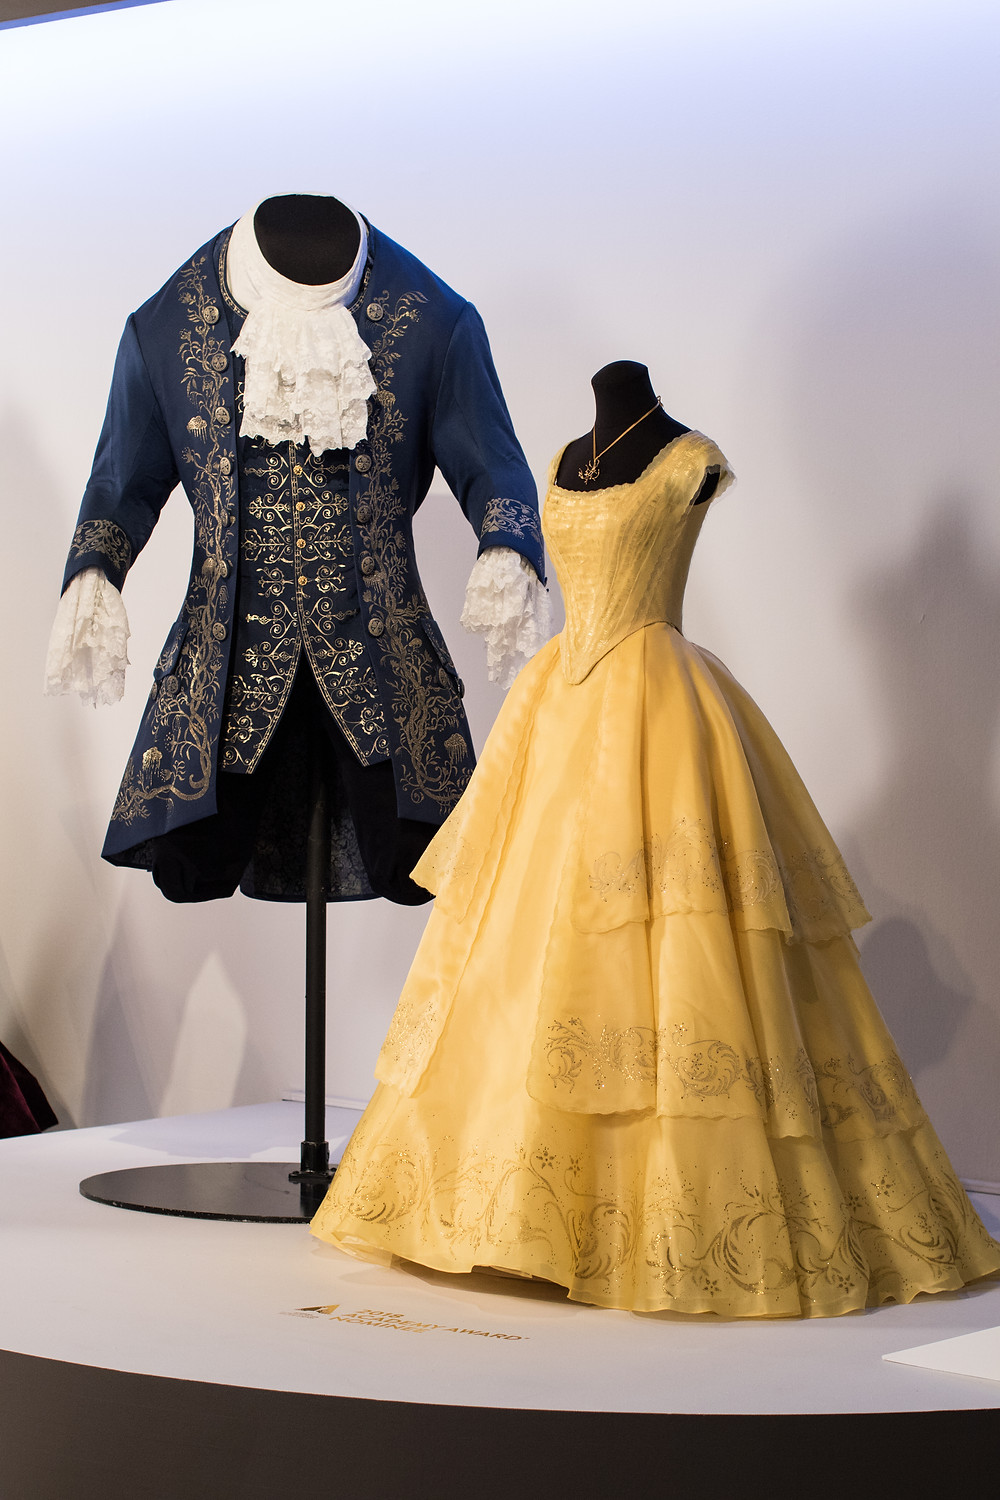 """Beauty and the Beast"" costumes by Jacqueline Durran, Academy Award nominee for Costume Design. (L to R) Costumes worn by actors: Dan Stevens as Beast, Emma Watson as Belle"